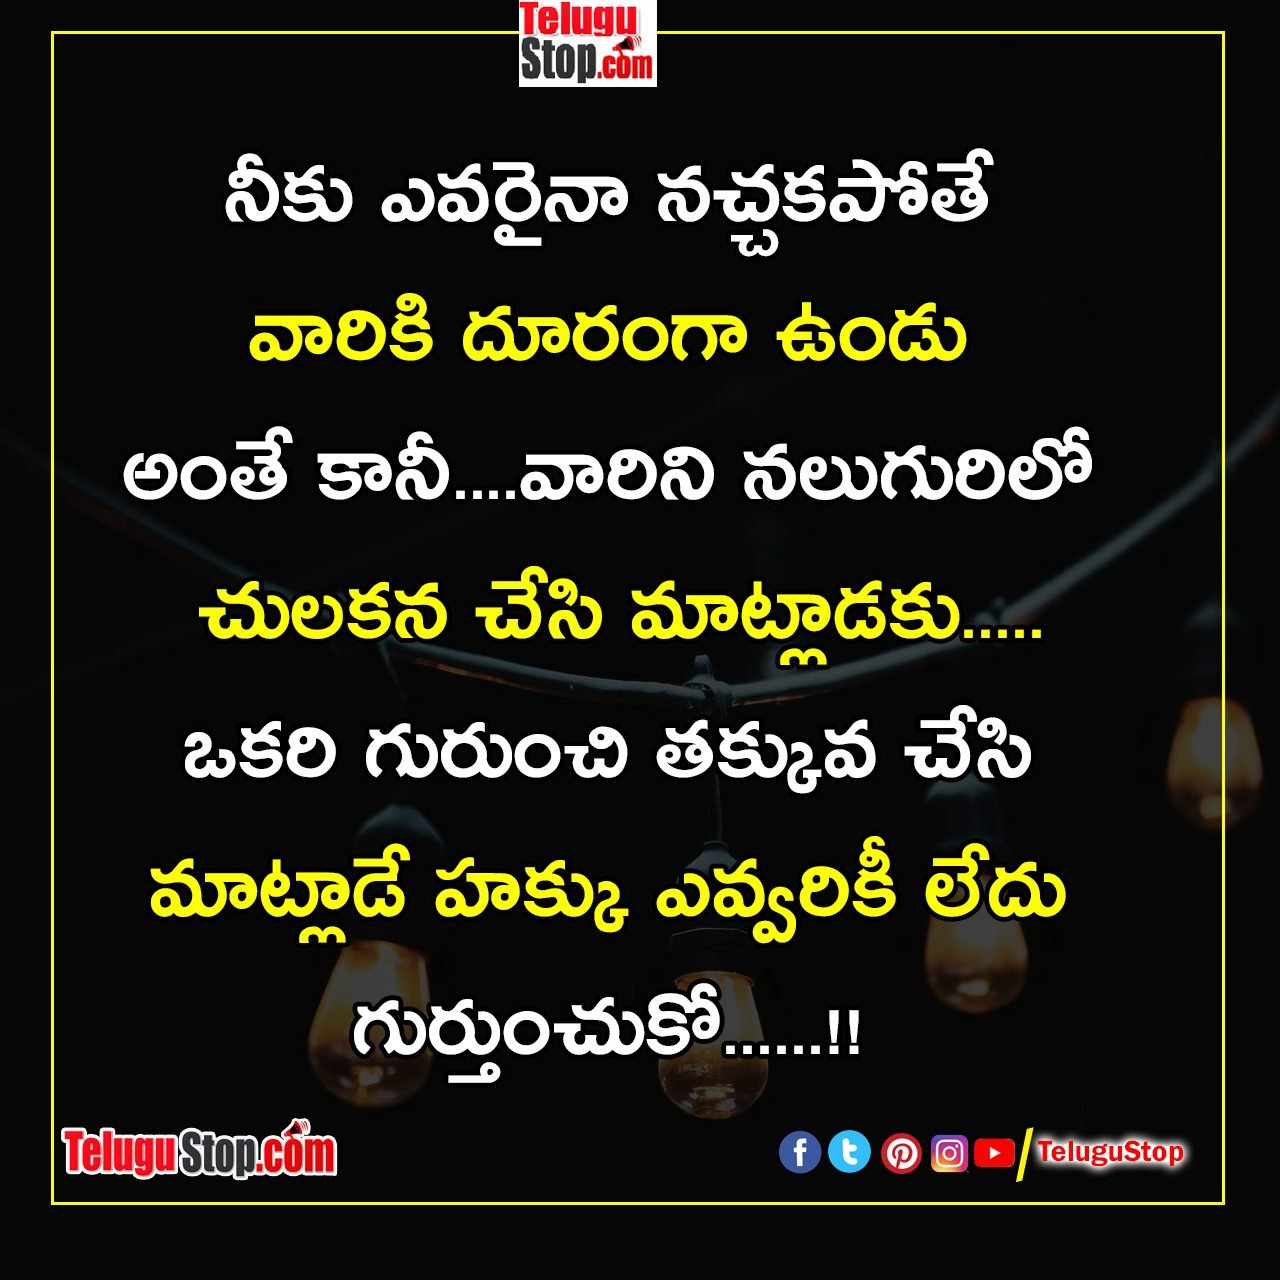 Telugu Life Facts Inspiriational Quotes, No One Has The Right To Belittle Someone And Talk Inspiriational Quotes, The Less Said The Better Inspirational Quotes, There Is Love In Anger Itself Inspirational Quotes-Telugu Daily Quotes - Inspirational/Motivational/Love/Friendship/Good Morning Quote